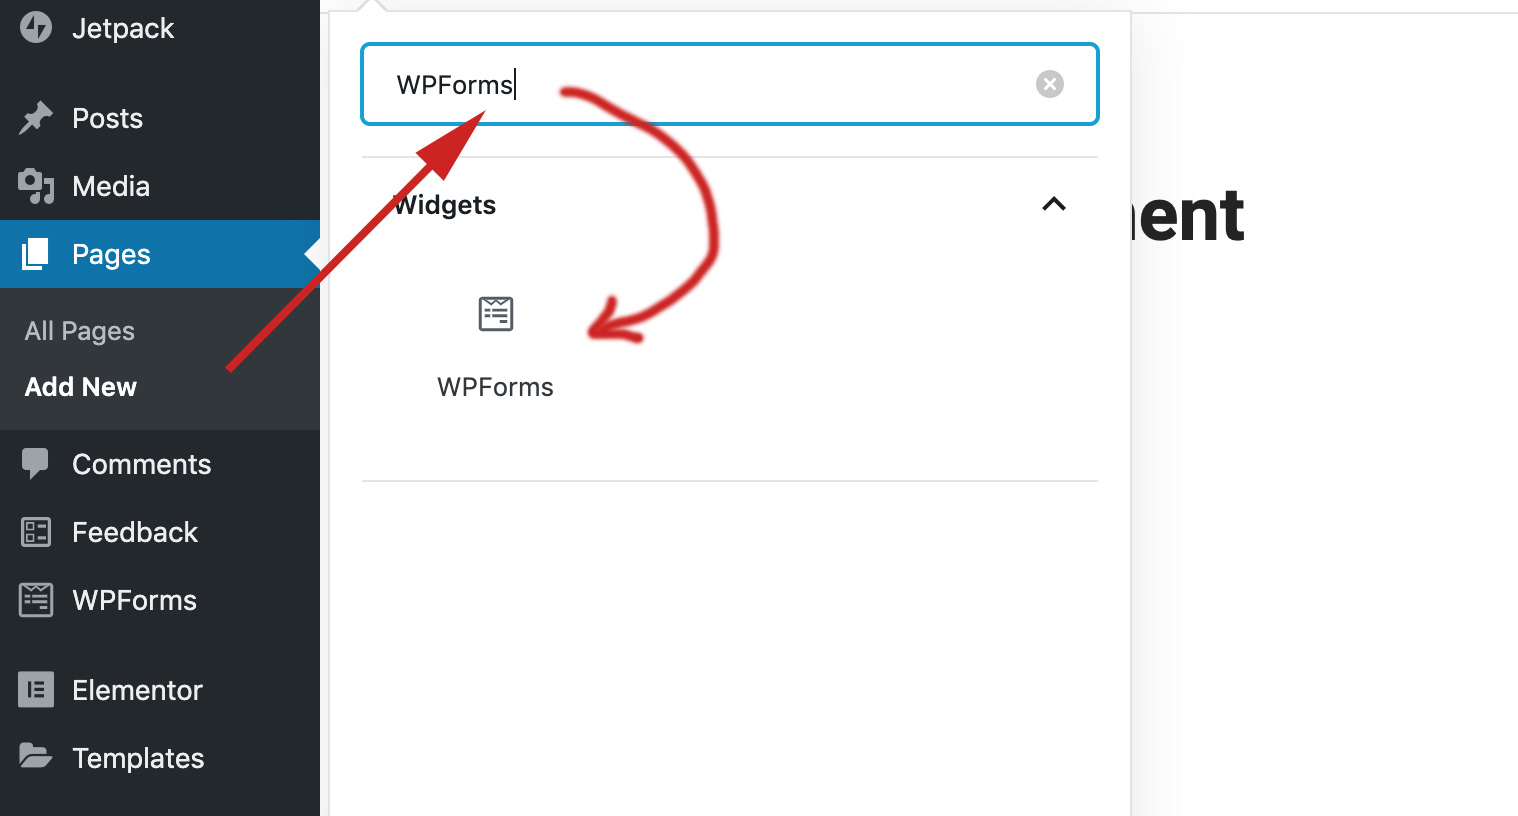 type WPForms in the search bar